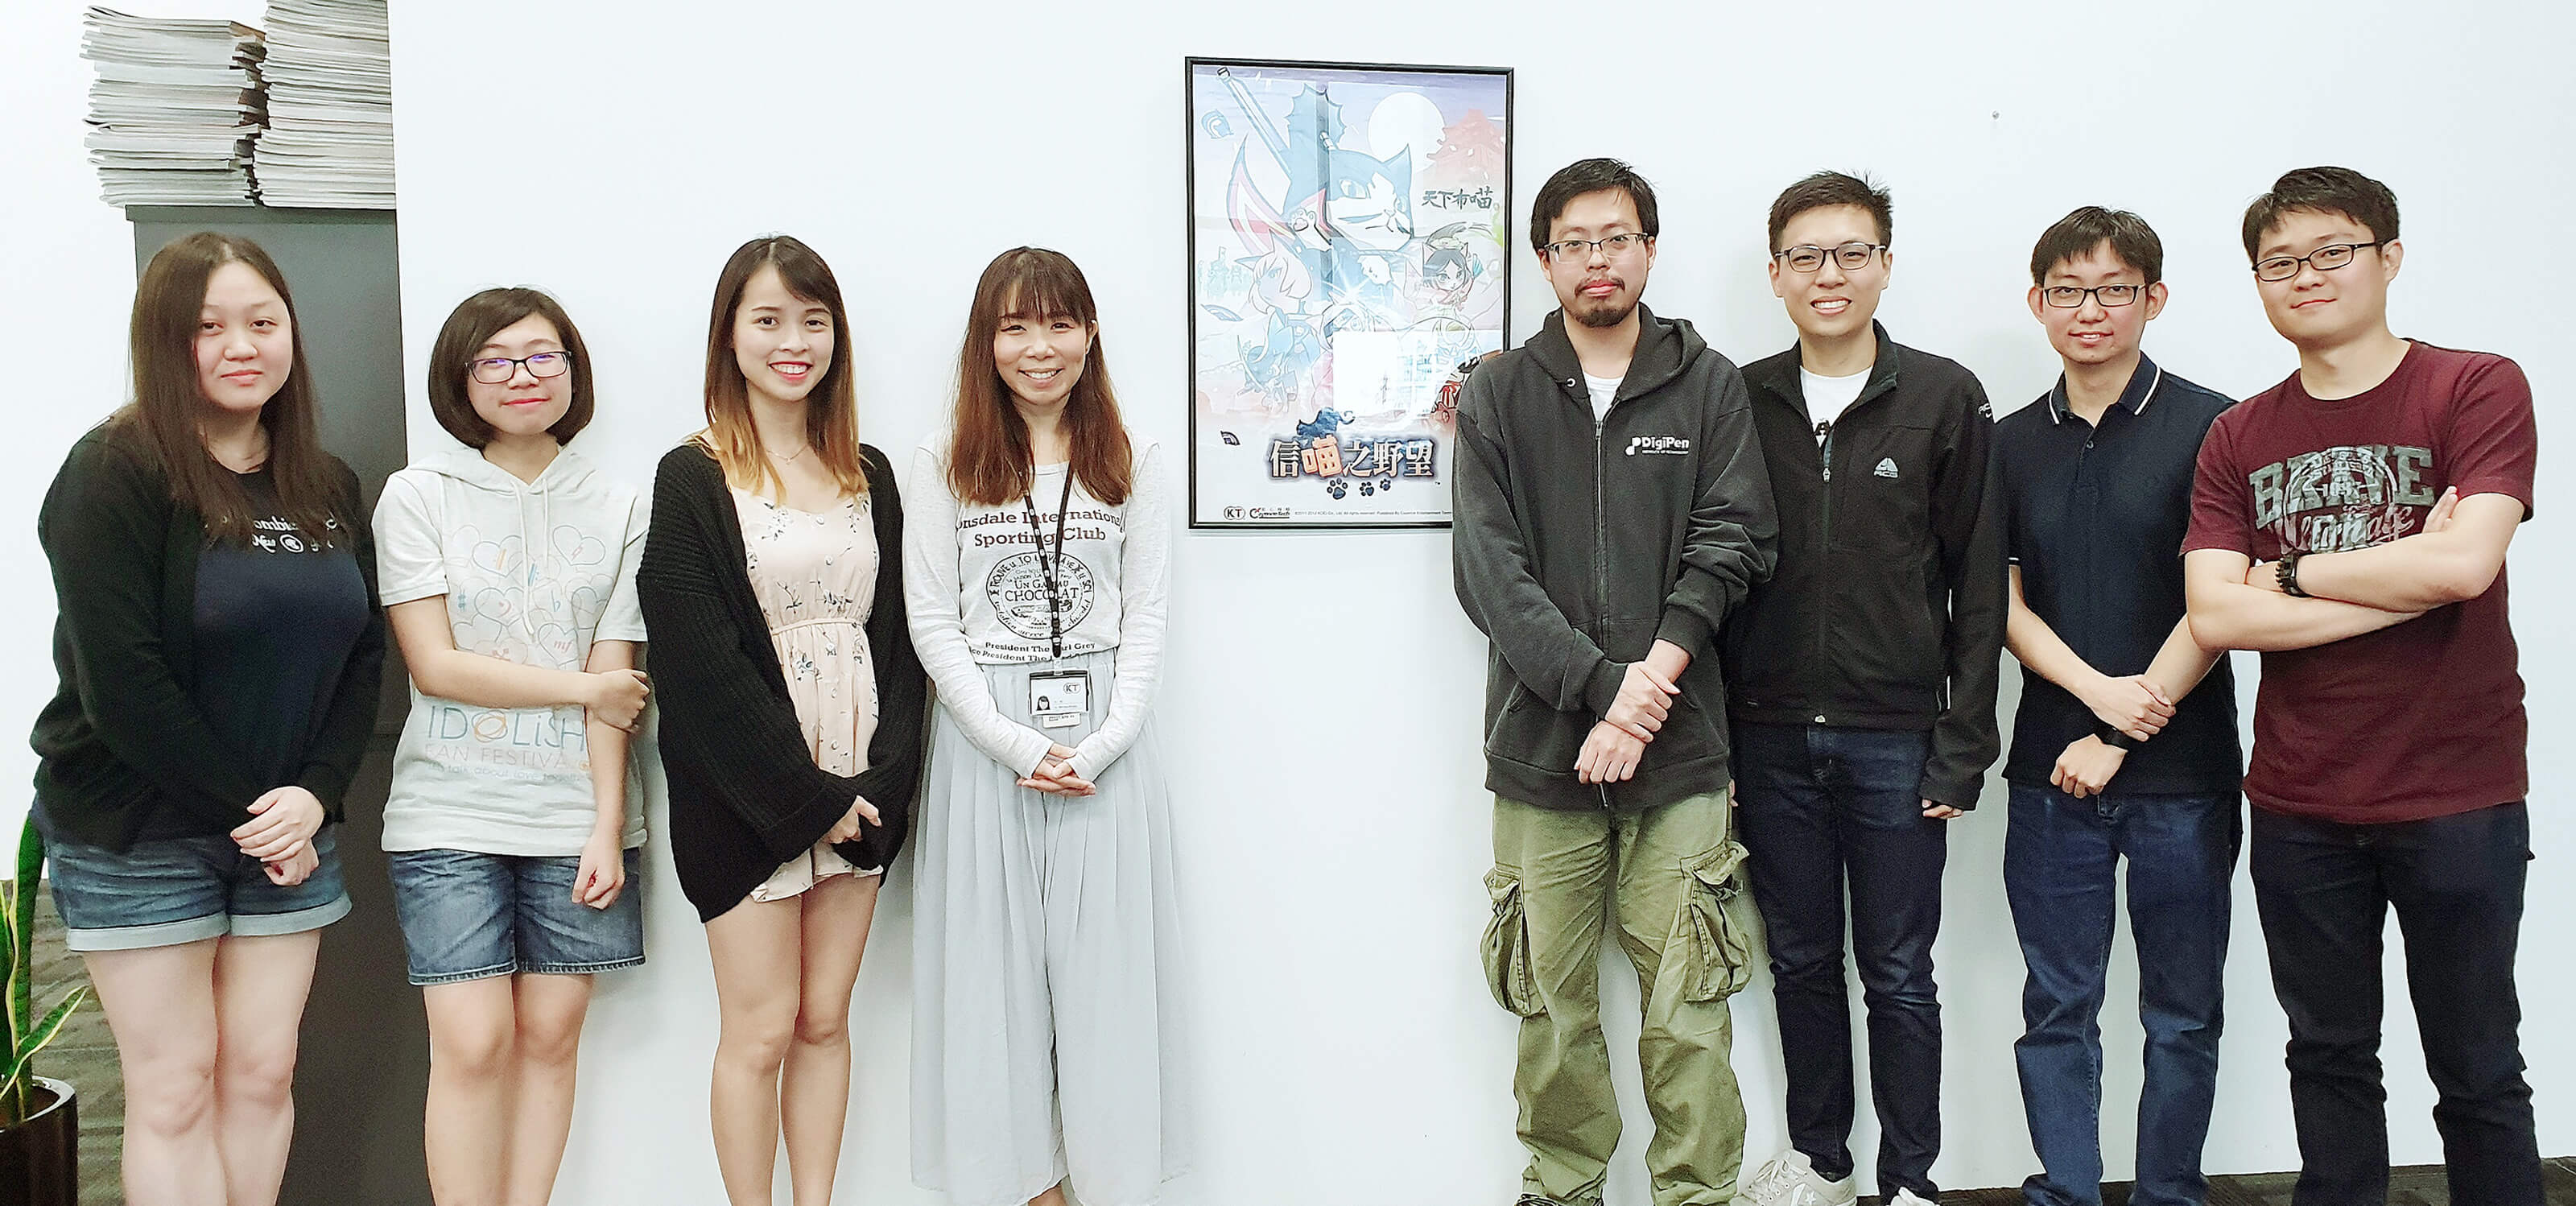 Group photo of the 8 DigiPen (Singapore) alumni who worked on Koei Tecmo's Nyapuri standing in office by a poster of the game.